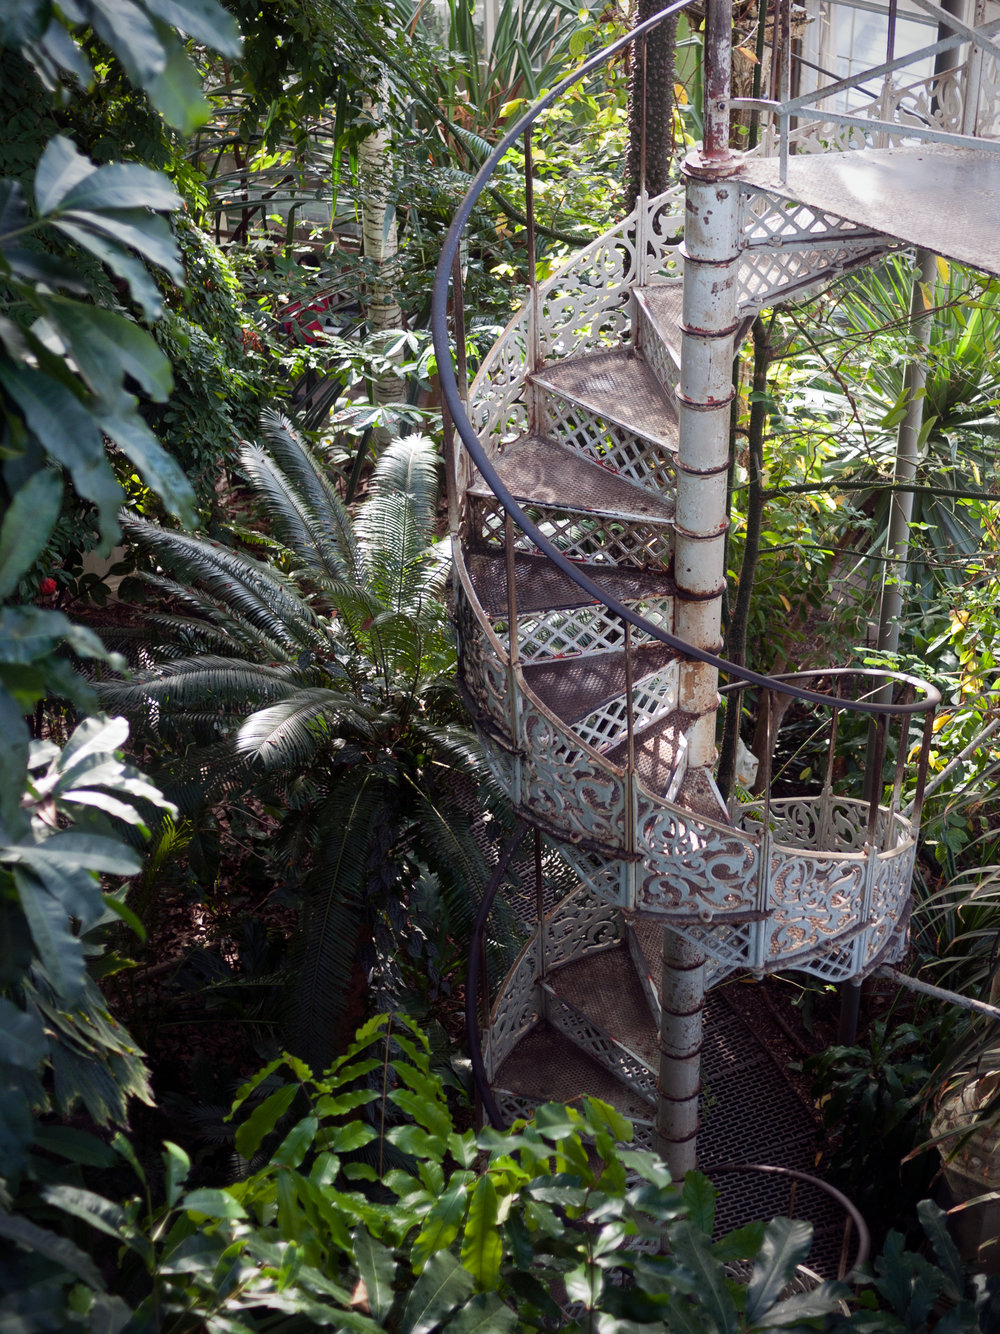 StaircaseJungle.jpg